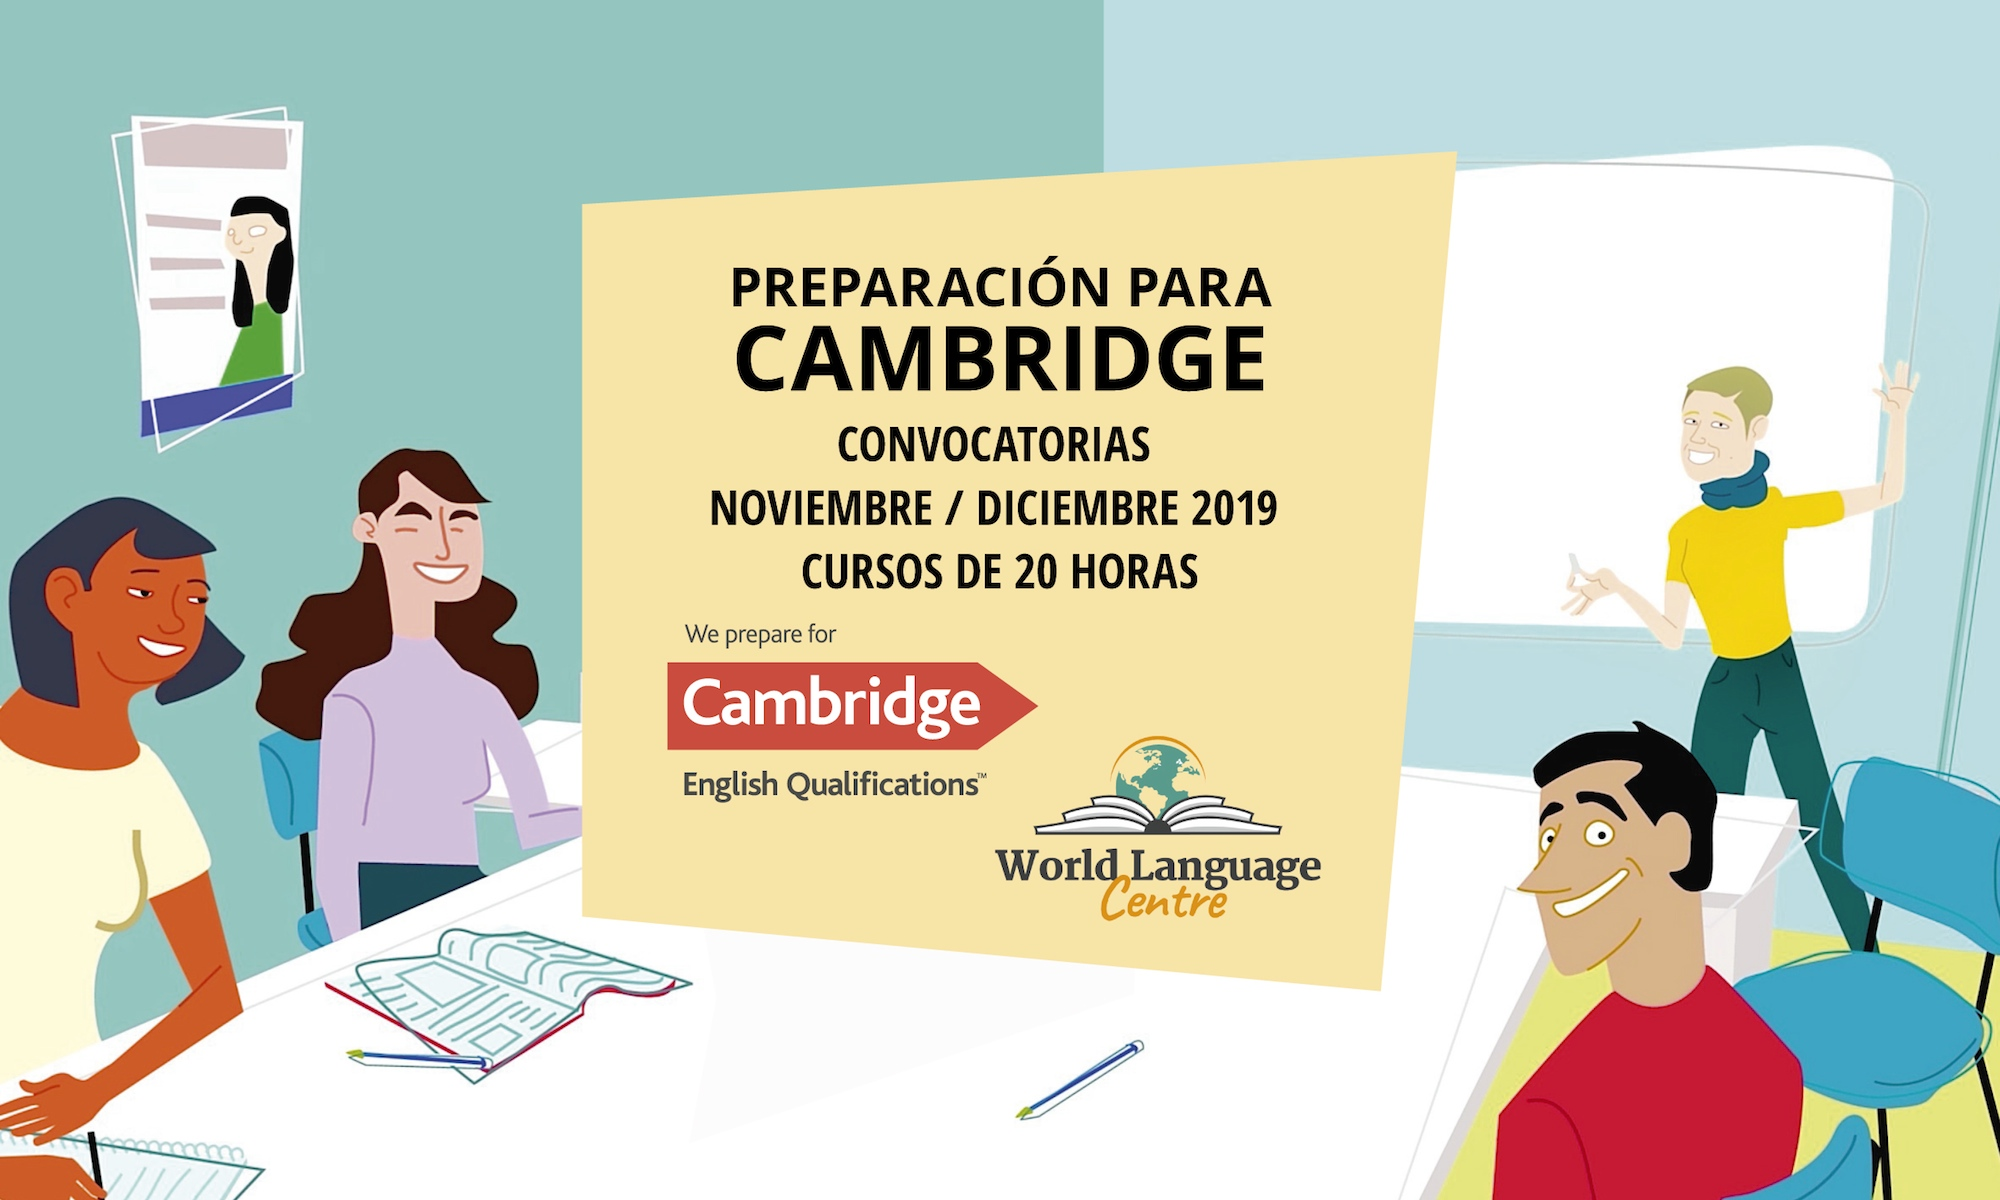 World Language Centre - Preparación para Cambridge